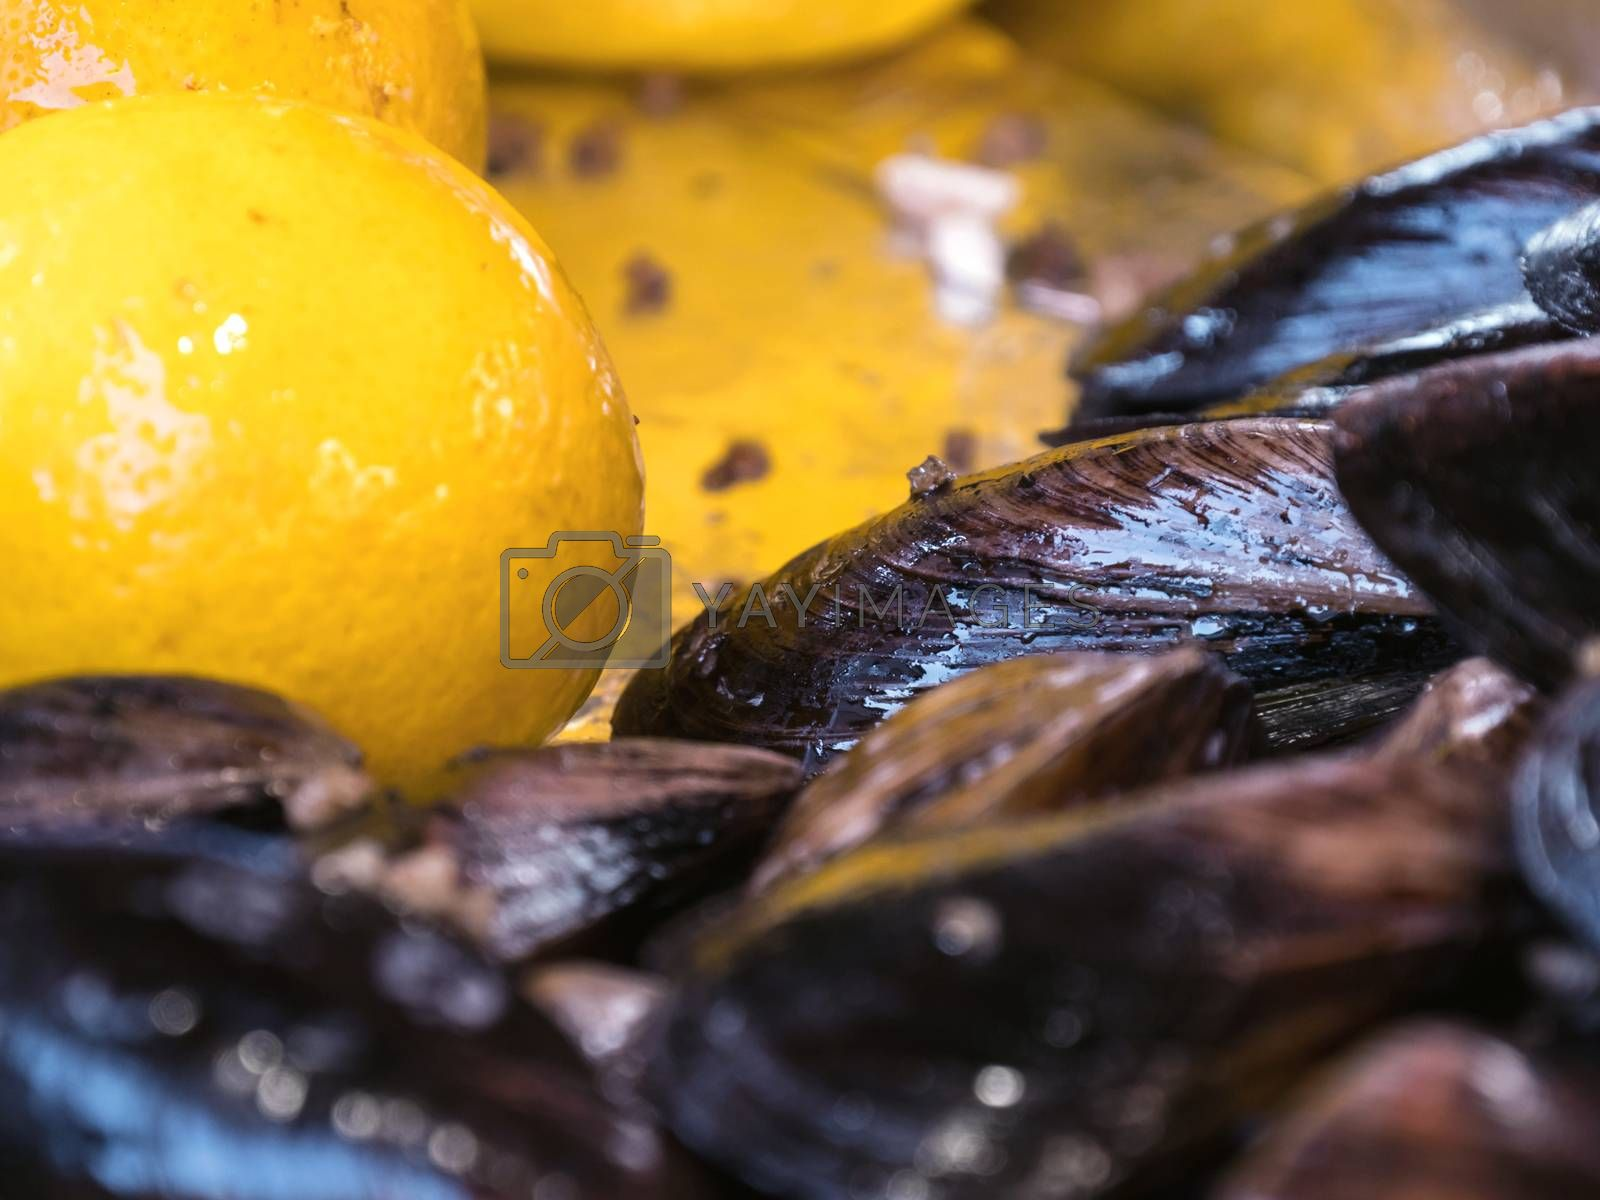 Cooked mussels in a bowl with lemon. Stuffed mussels and lemon. Mussels close up on a tray in the window with lemon. Tray with mussels and lemons. Street trade.